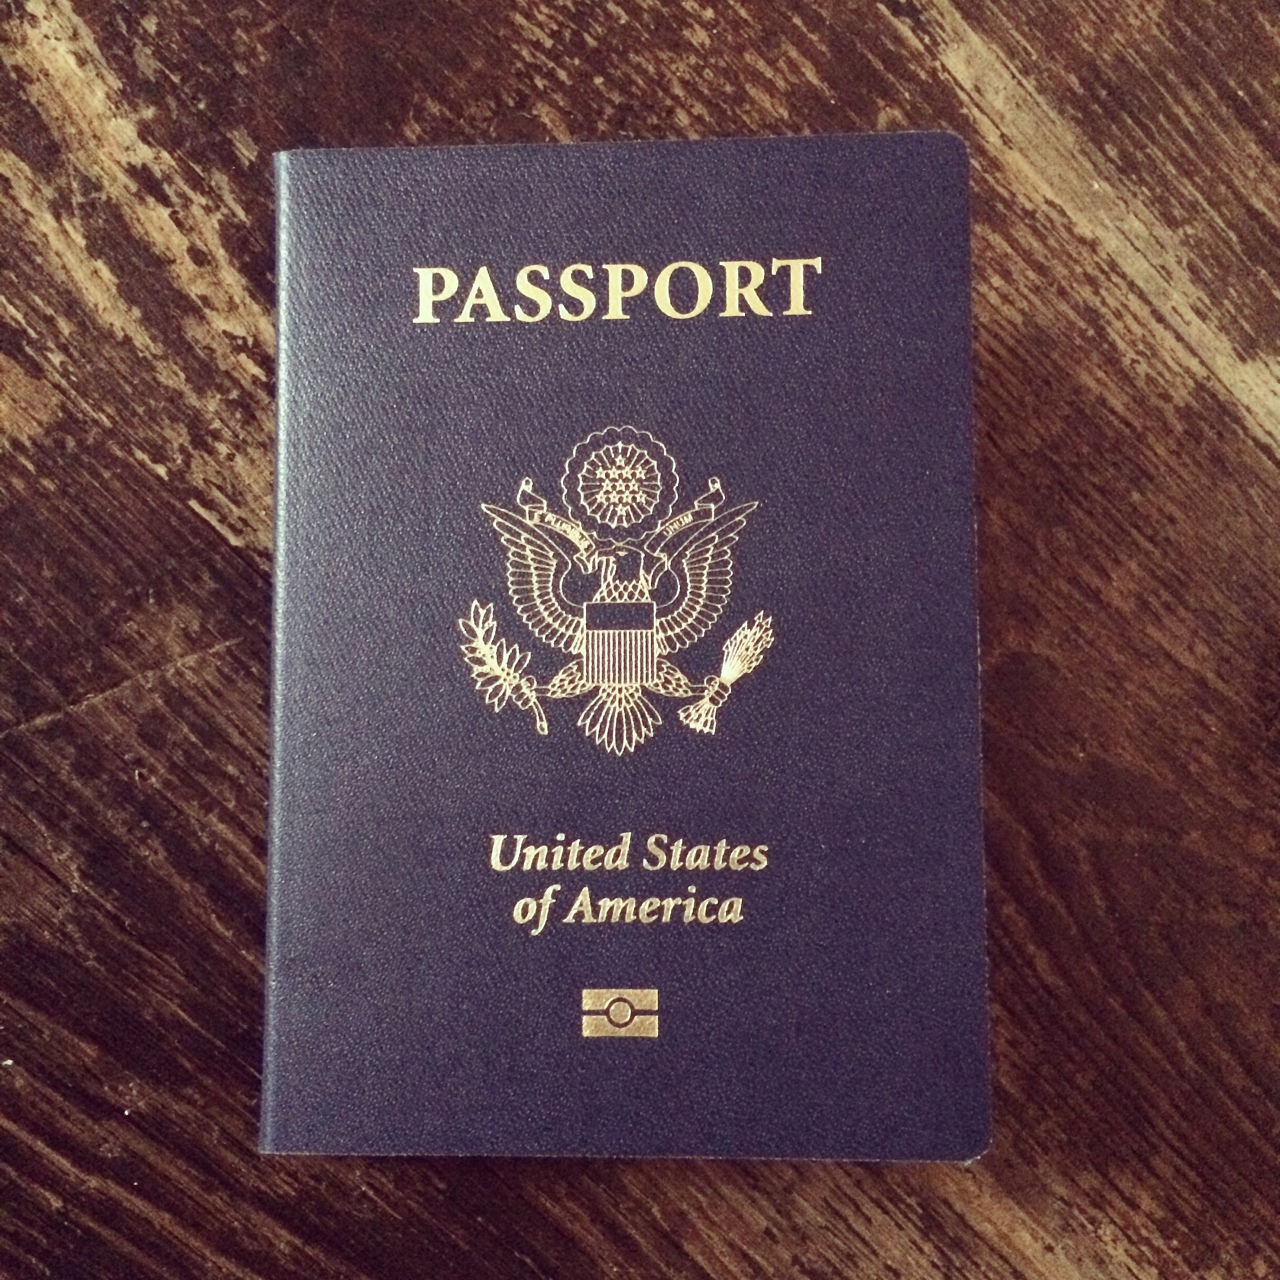 "This was in my mailbox today!!!! I am so official now!!!    Found on page 44 of my new USA passport:    ""It is immigrants who brought to this land the skills of their hands and brains to make of it a beacon of opportunity and hope for all men"". - Herbert H. Lehman."